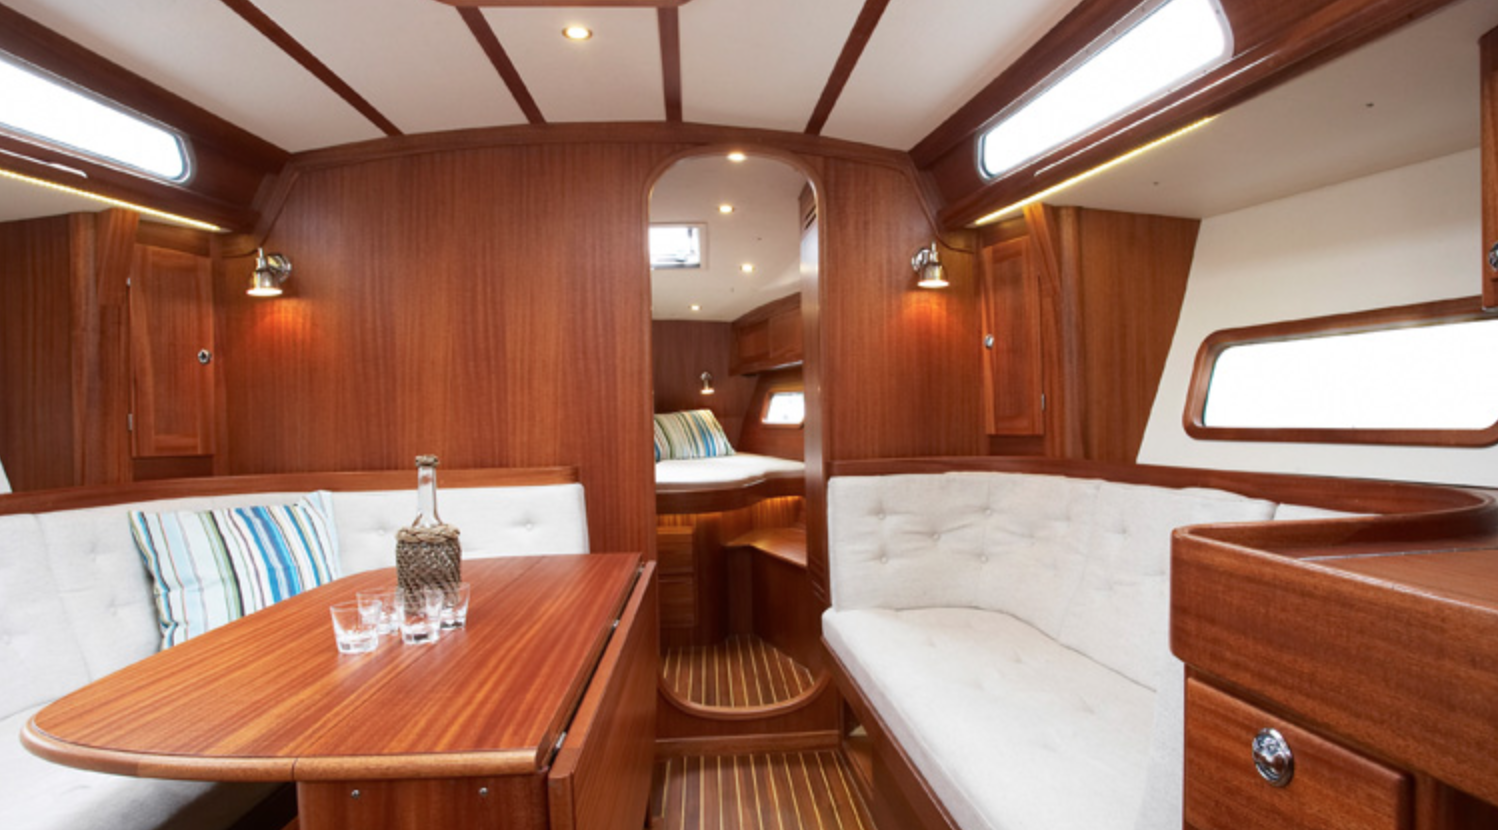 Linjett 43 saloon. Typical Swedish high quality woodwork. Photo by: Rosättra Yard